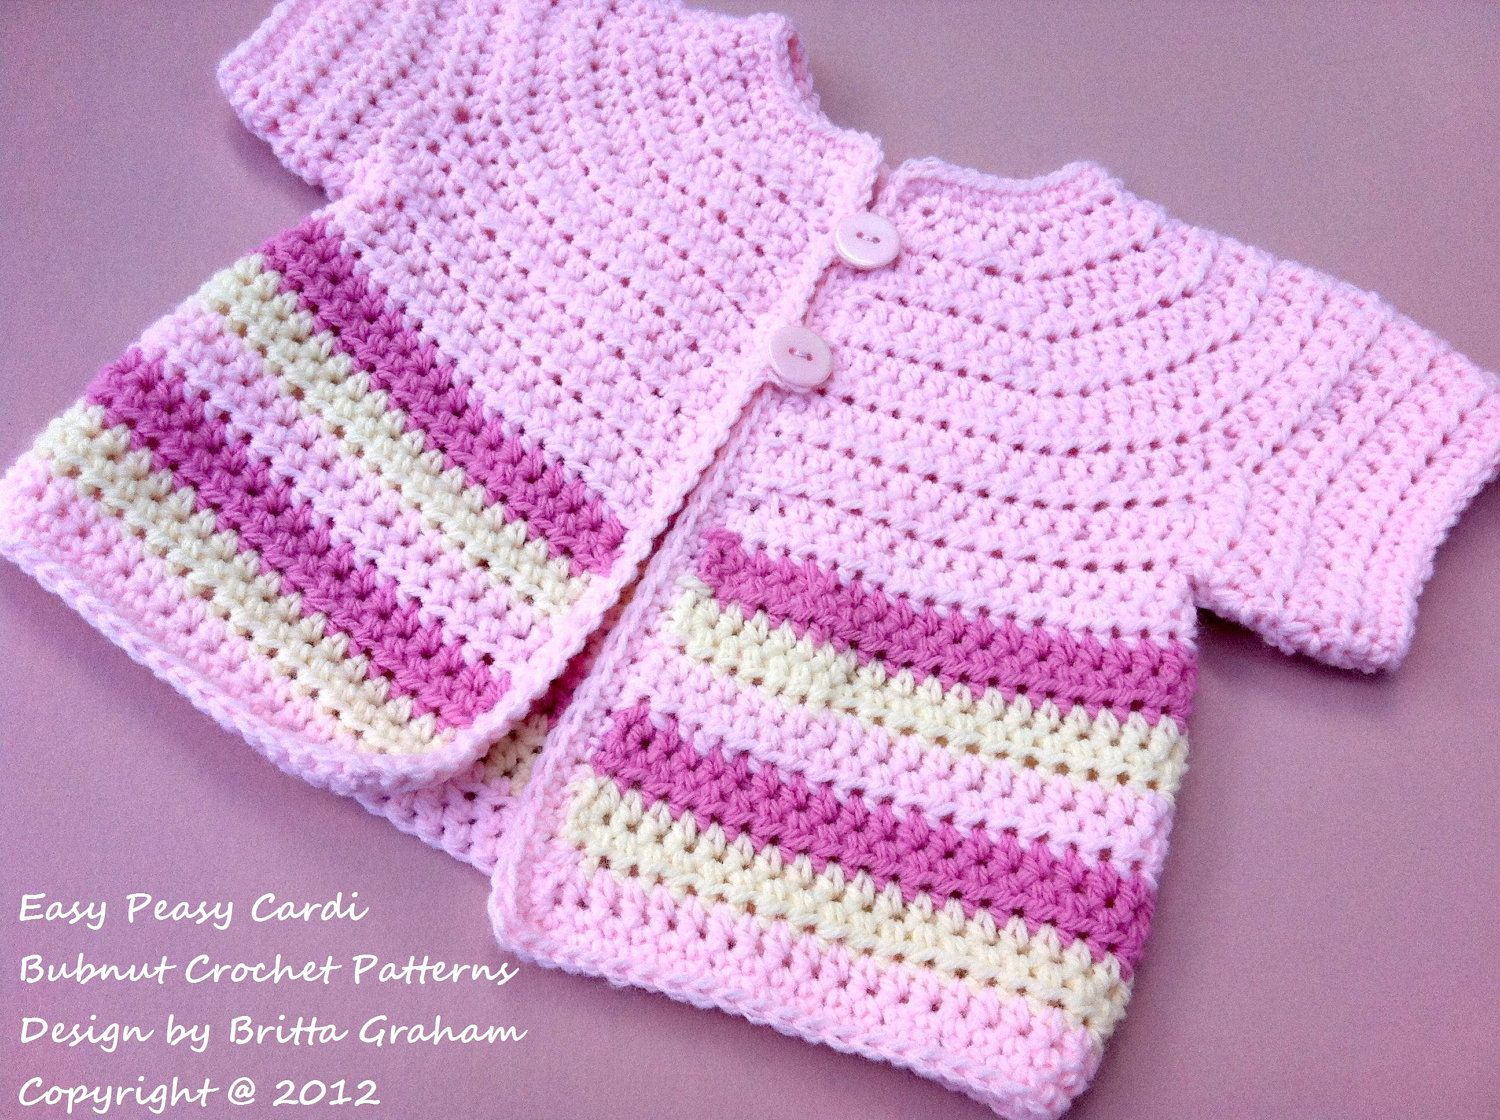 Crochet newborn baby pullover sweater pattern free like this crochet newborn baby pullover sweater pattern free like this item bankloansurffo Image collections